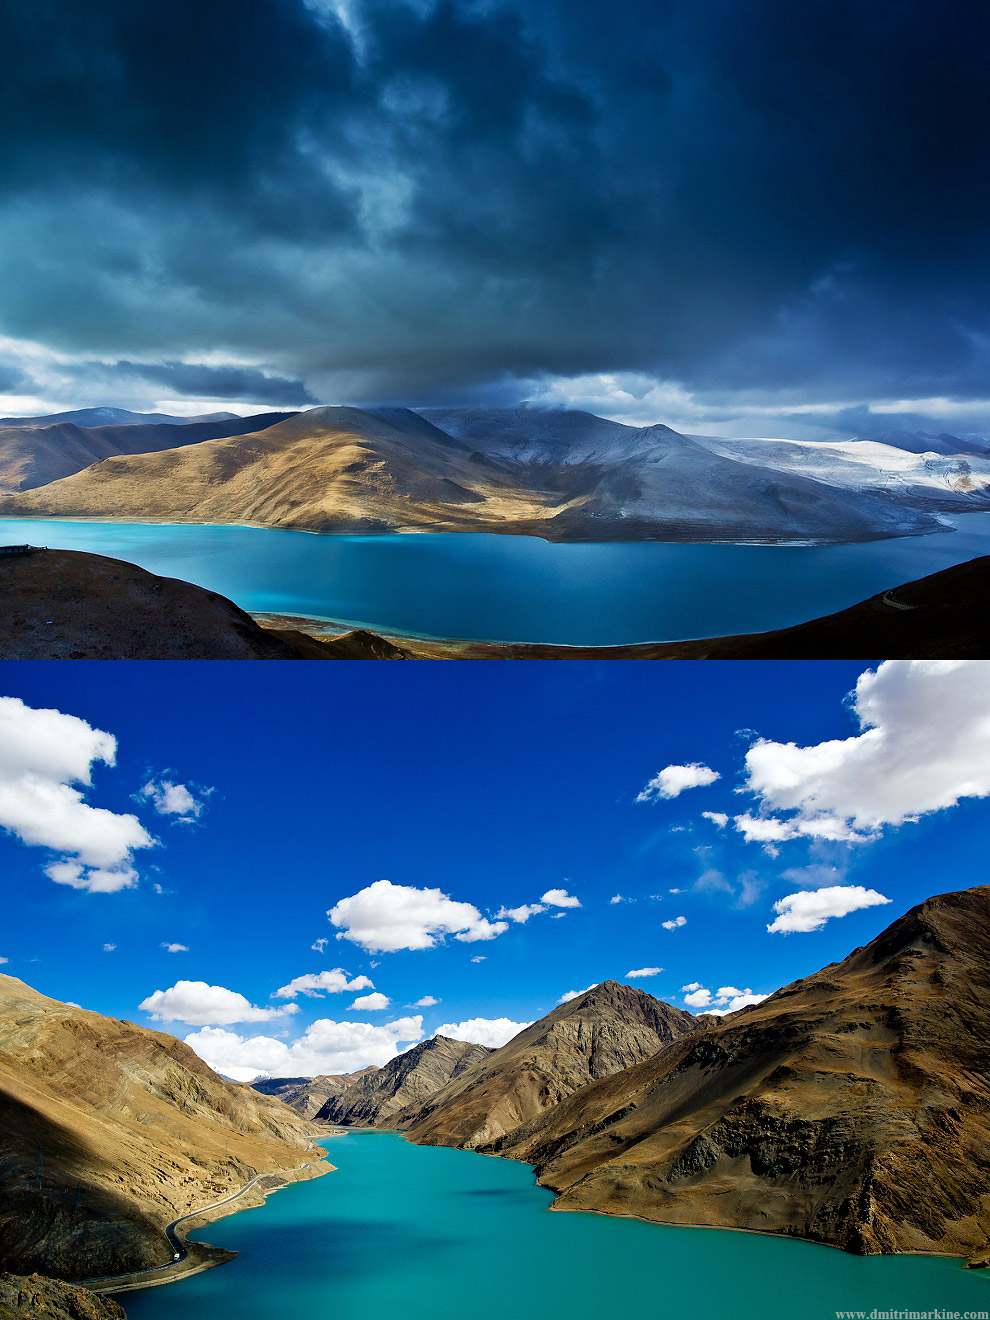 high altitude lakes in Tibet with amazing landscapes